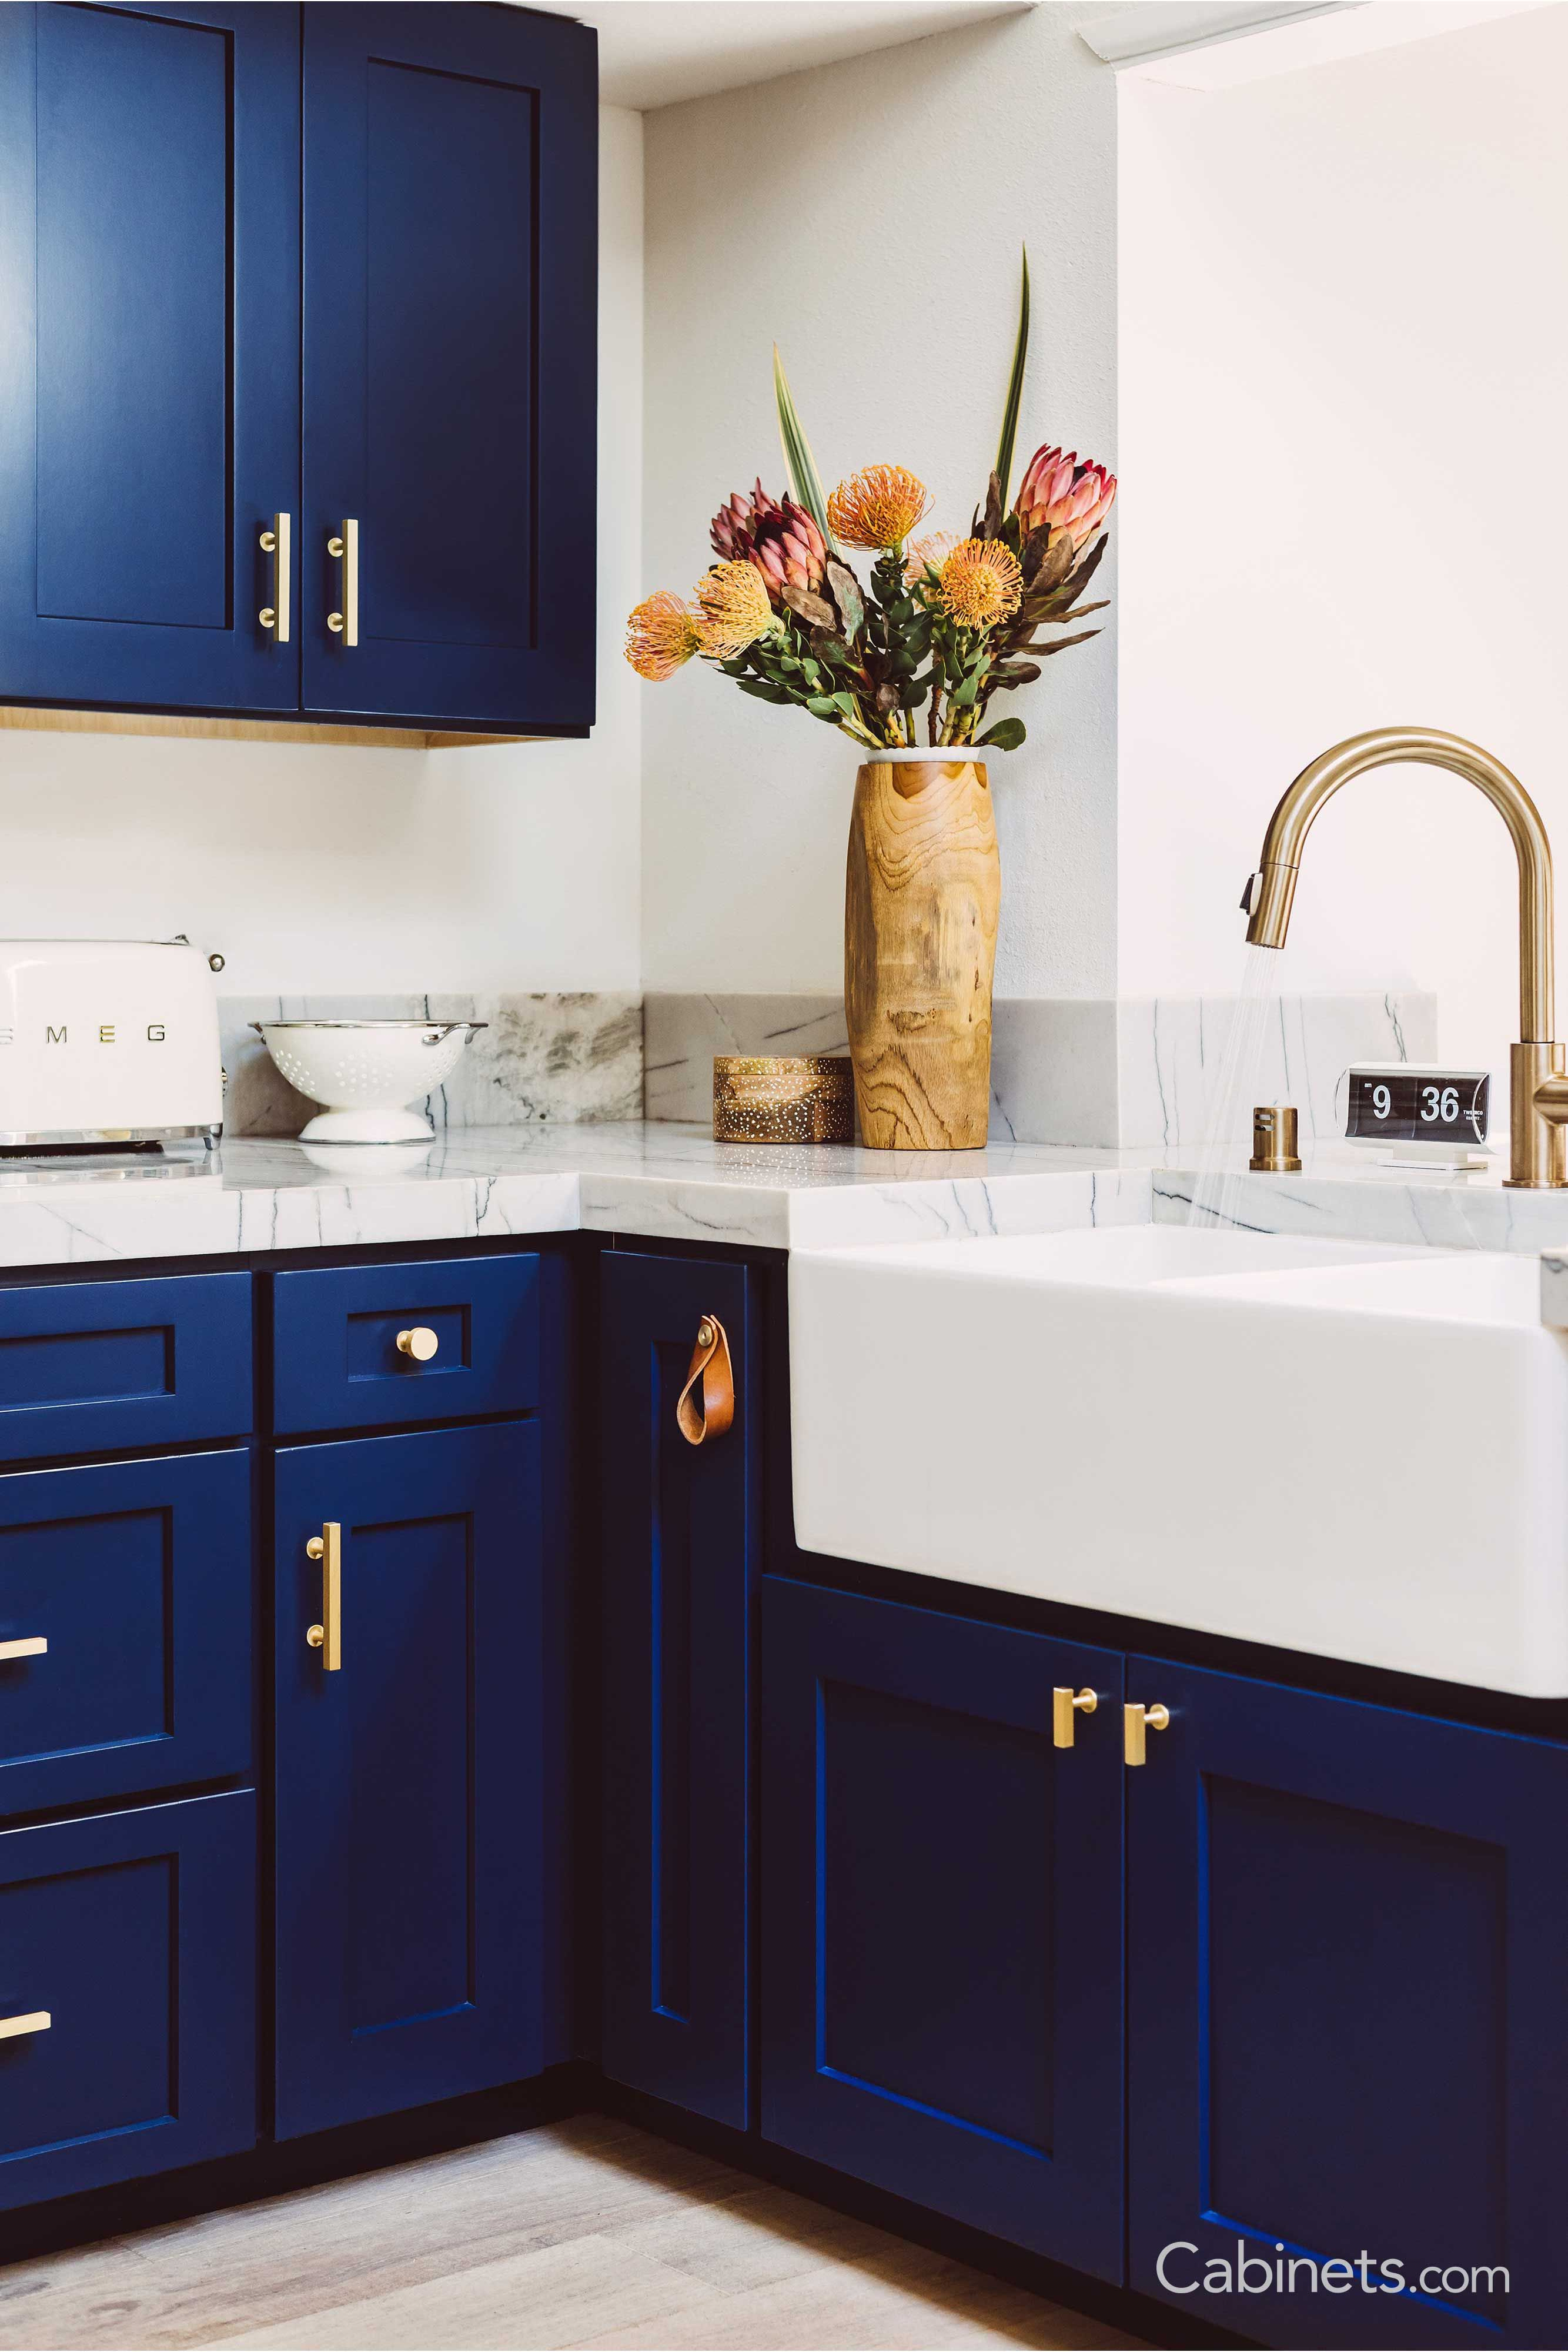 Naval Cabinets And Gold Hardware What Kitchen Dreams Are Made Of